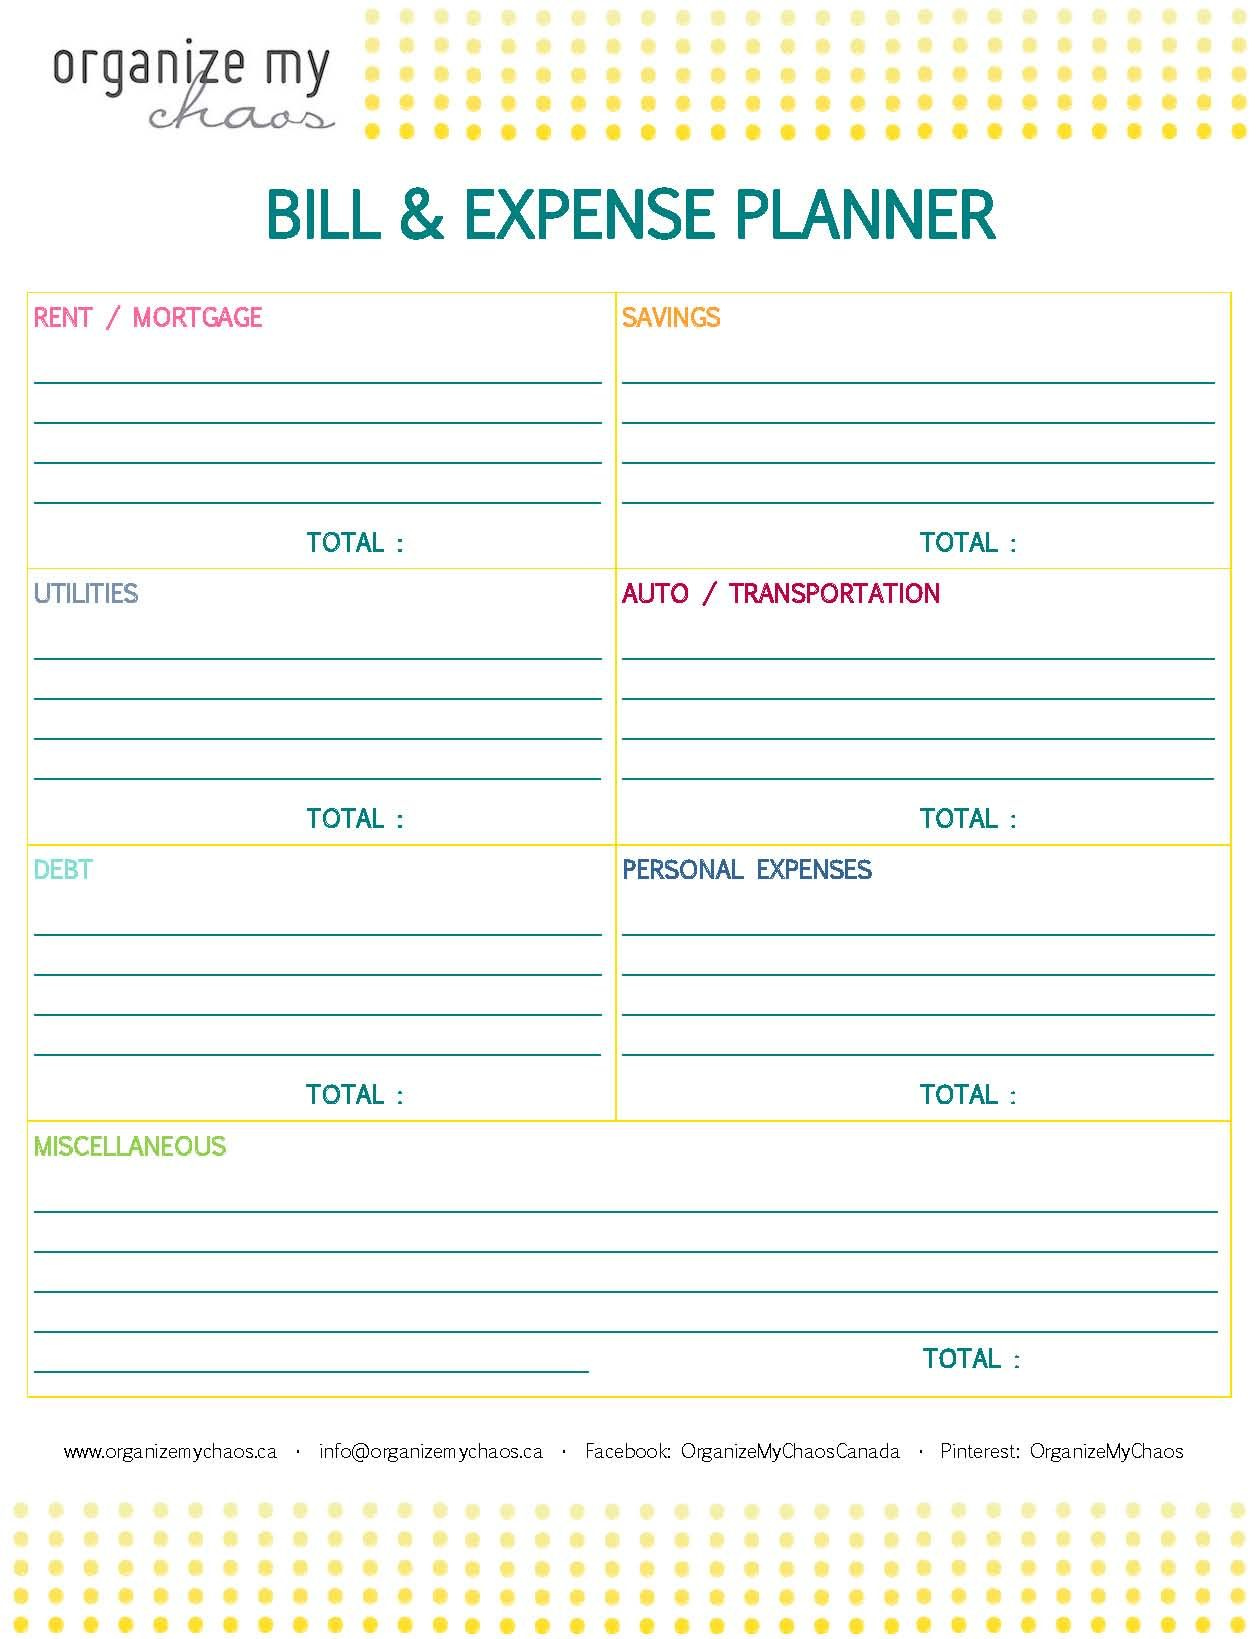 organize my chaos bill expense planner keep track of monthly